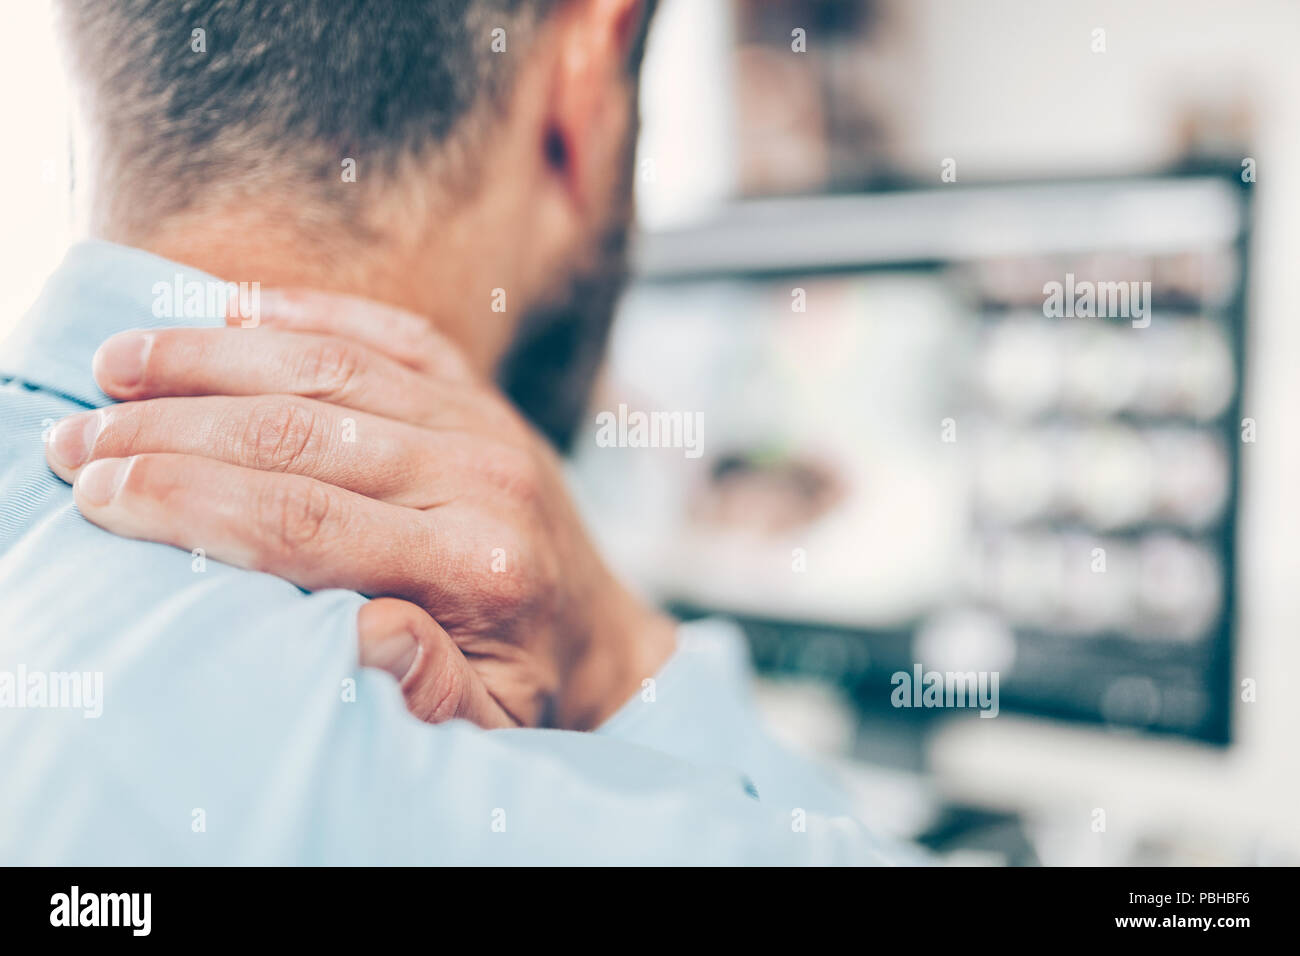 Office worker with neck and back pain from sitting at desk all day - Stock Image